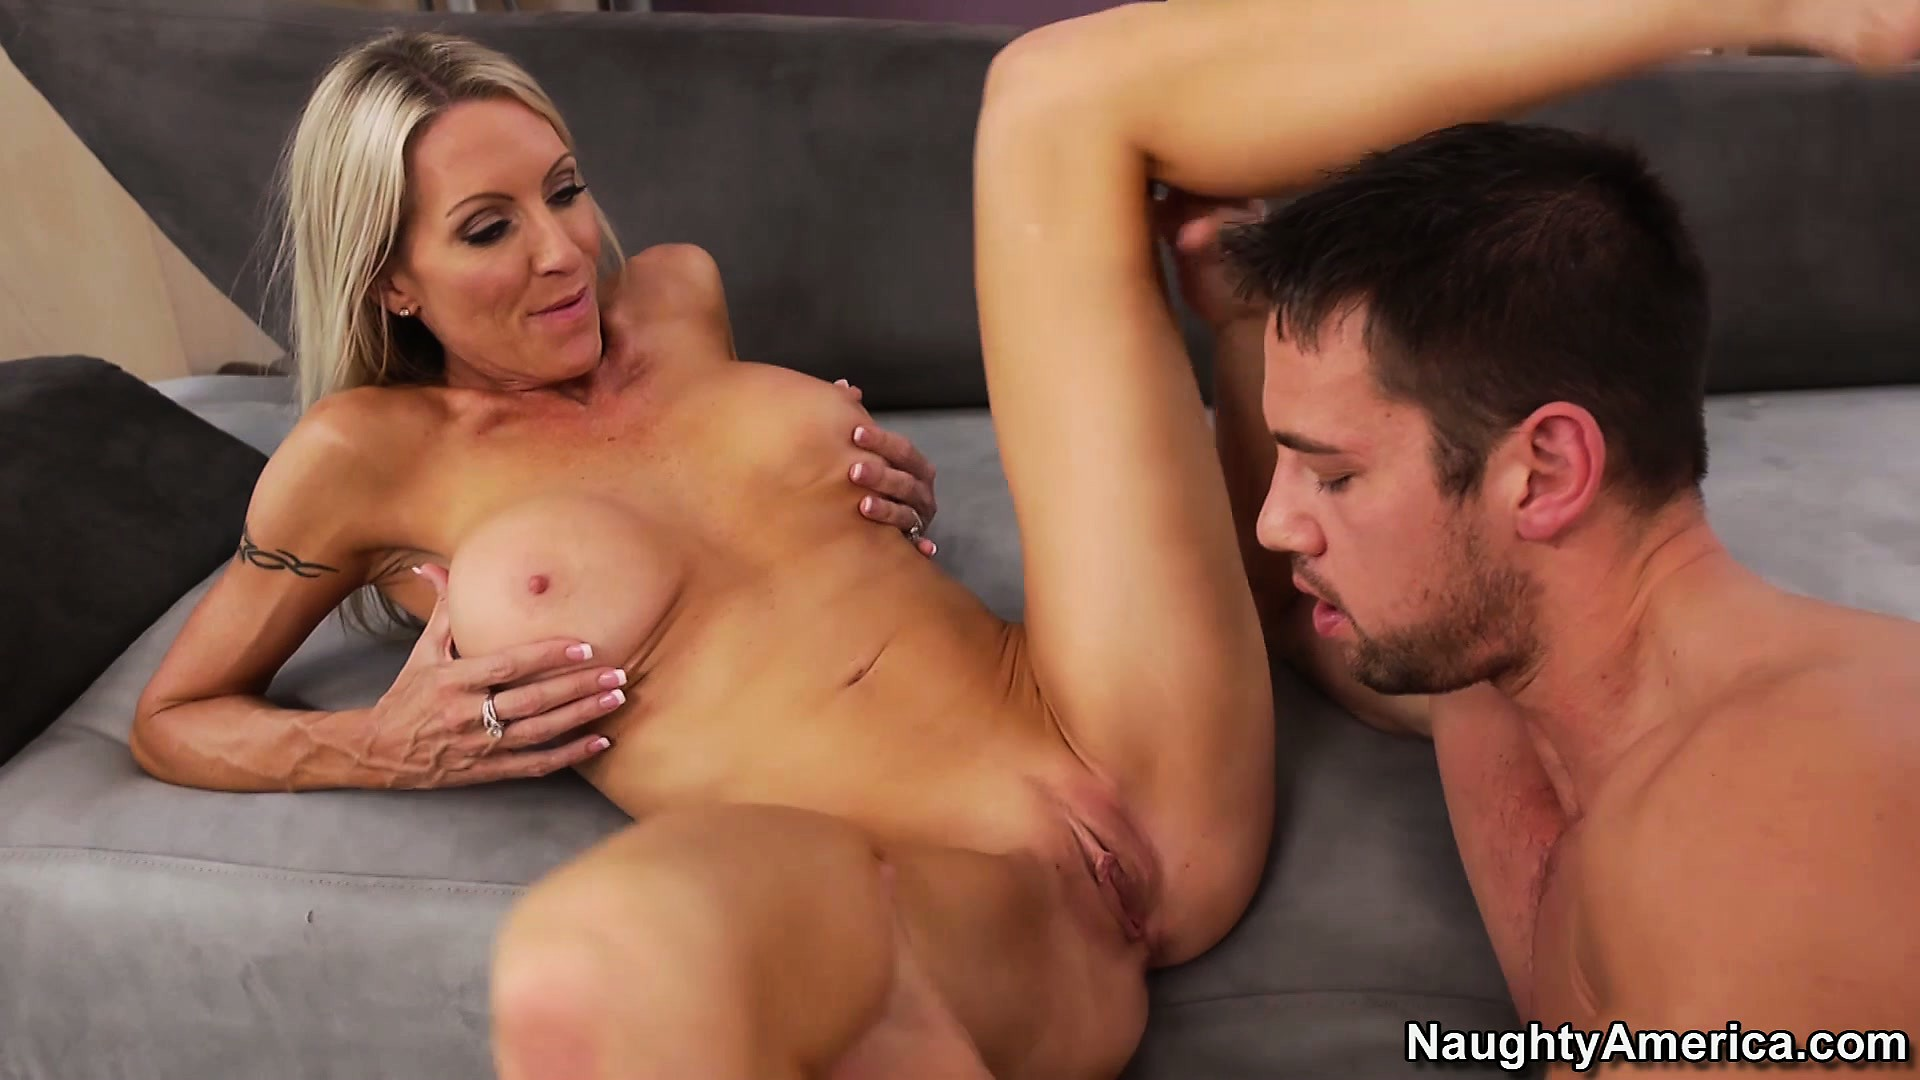 Porno Video of Blonde Cougar With Juicy Curves Takes It On Her Side From A Stud